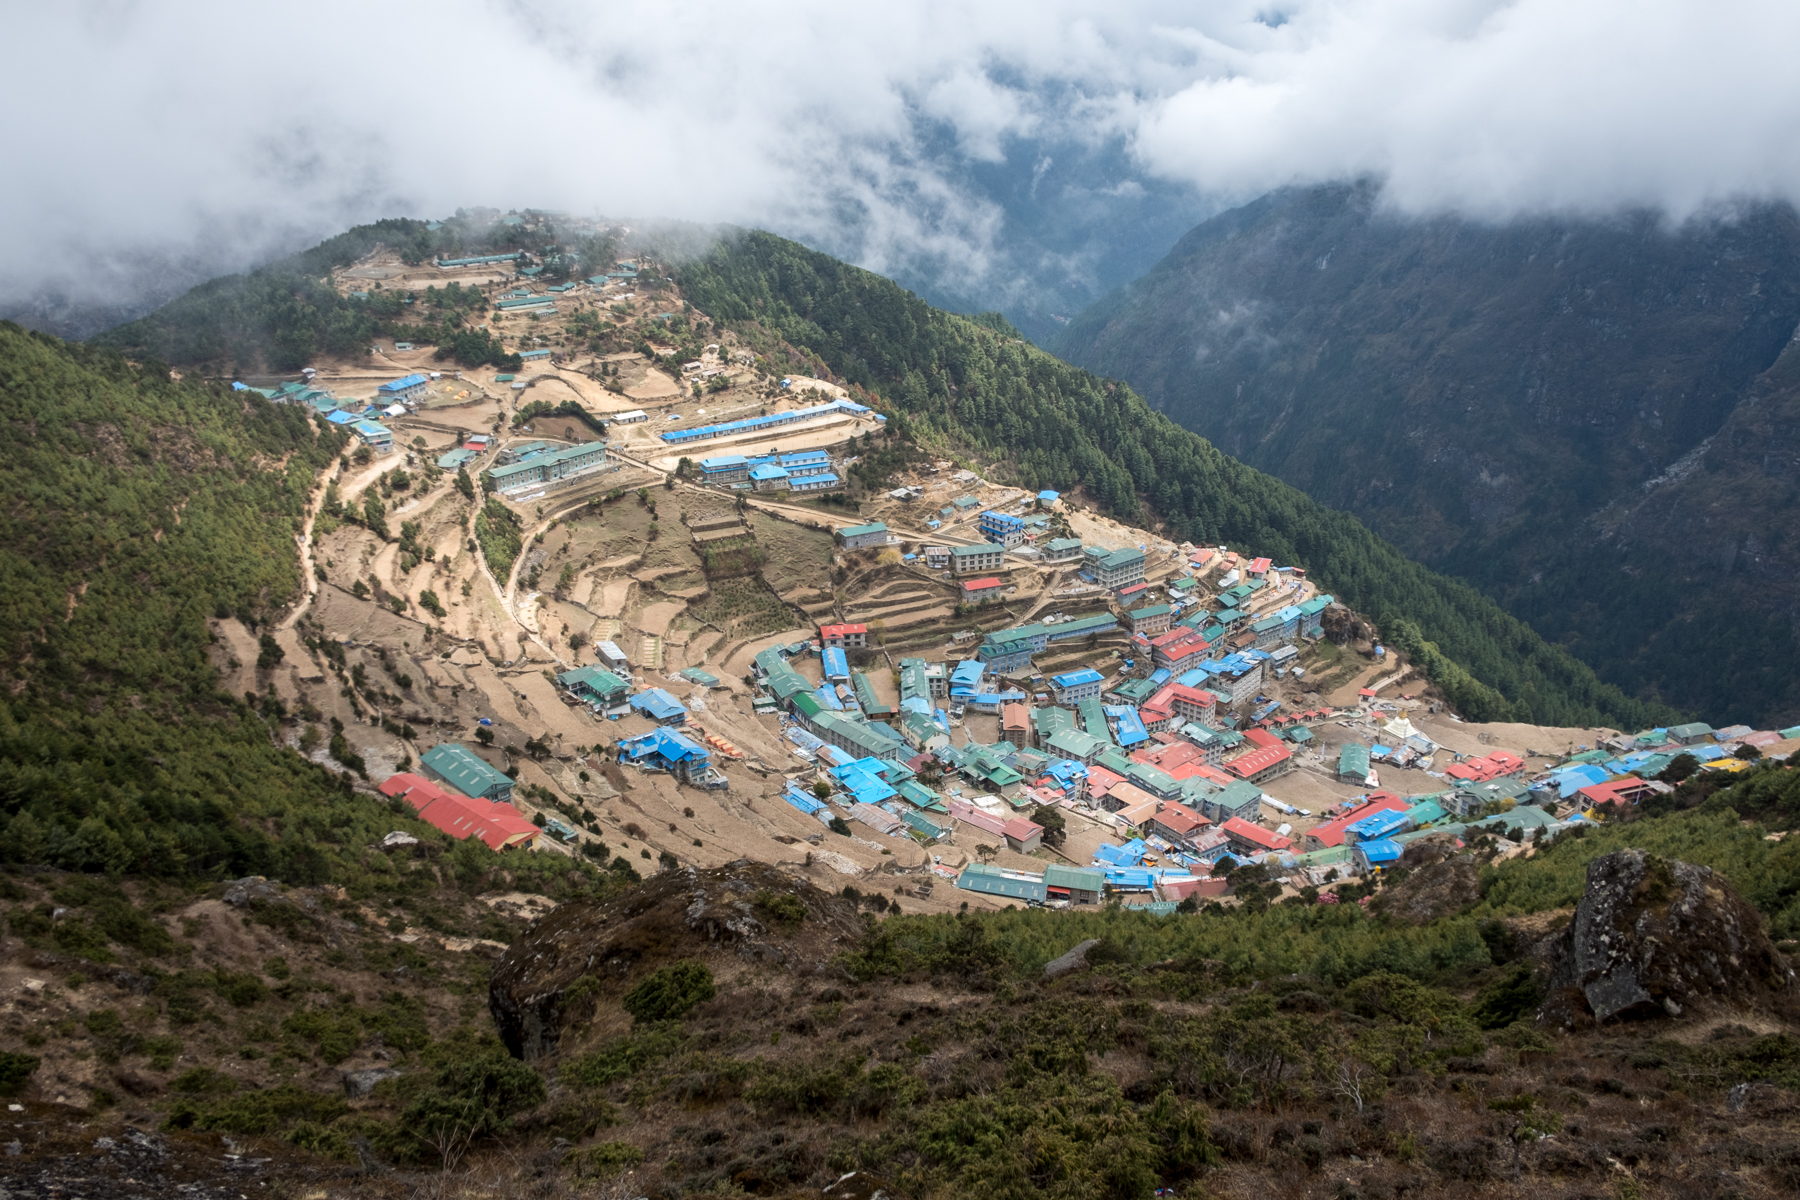 Namche Bazzar, Nepal, as seen from above.